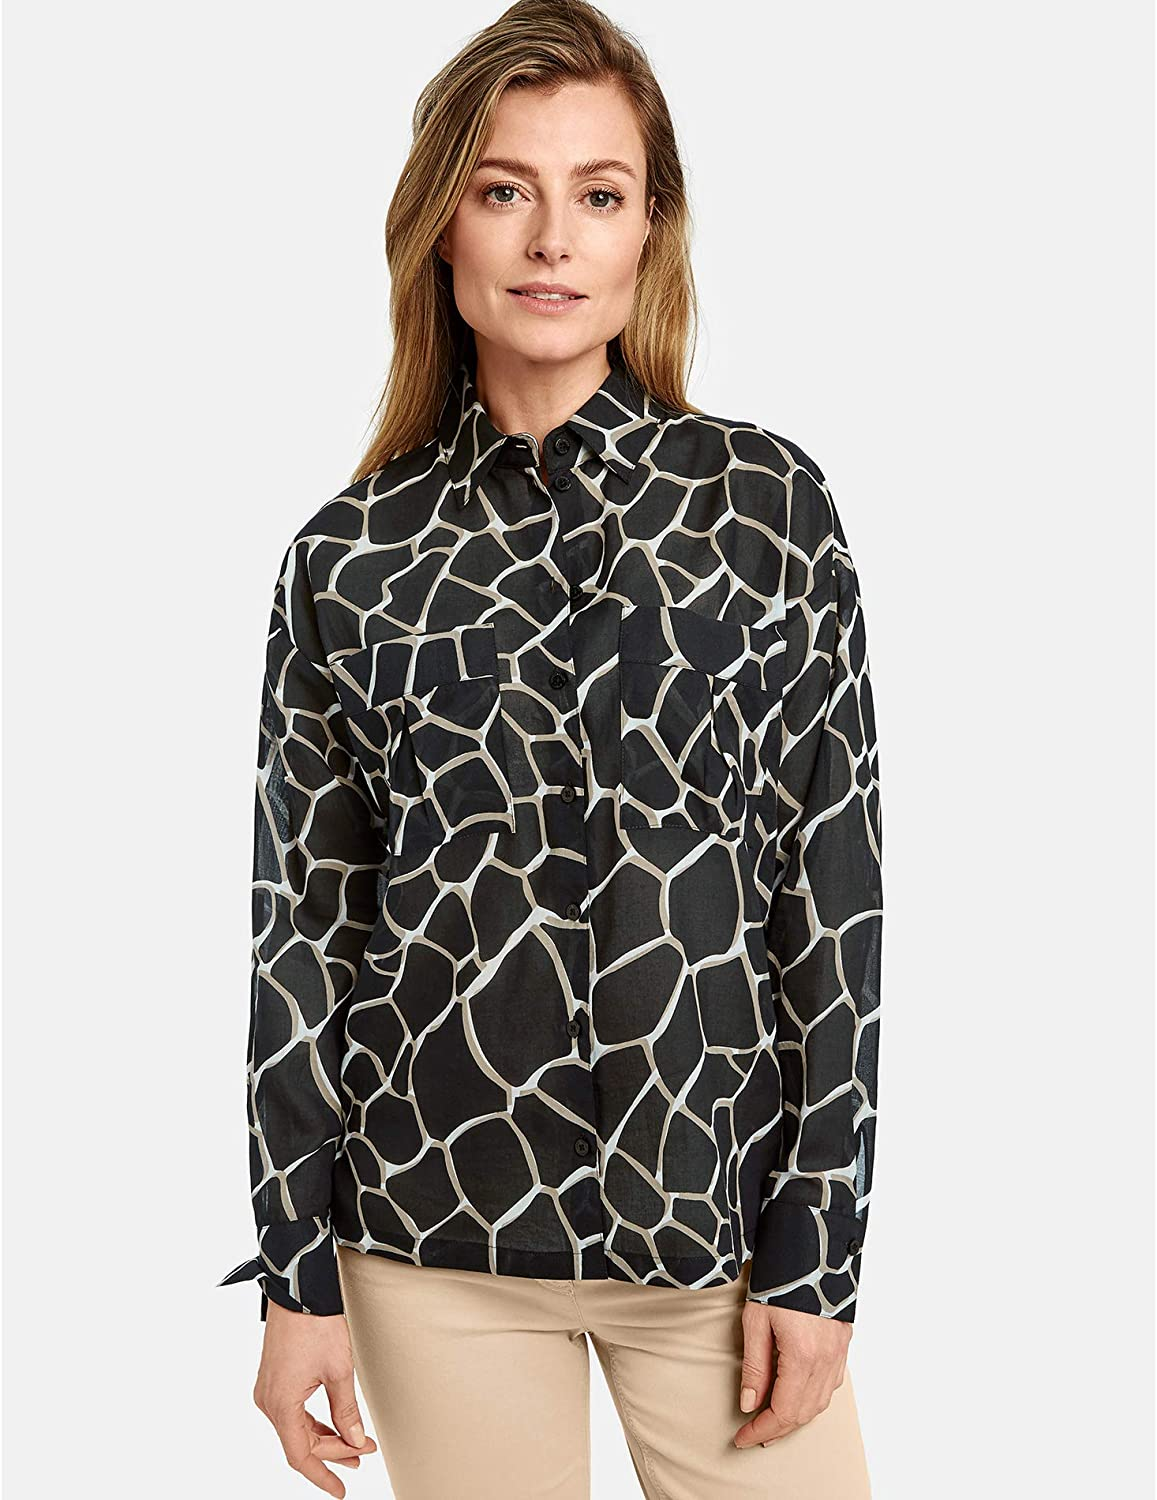 Gerry Weber Women's Long-Sleeved Blouse with Animal Print Figure Playing Ecru/White/Black Print